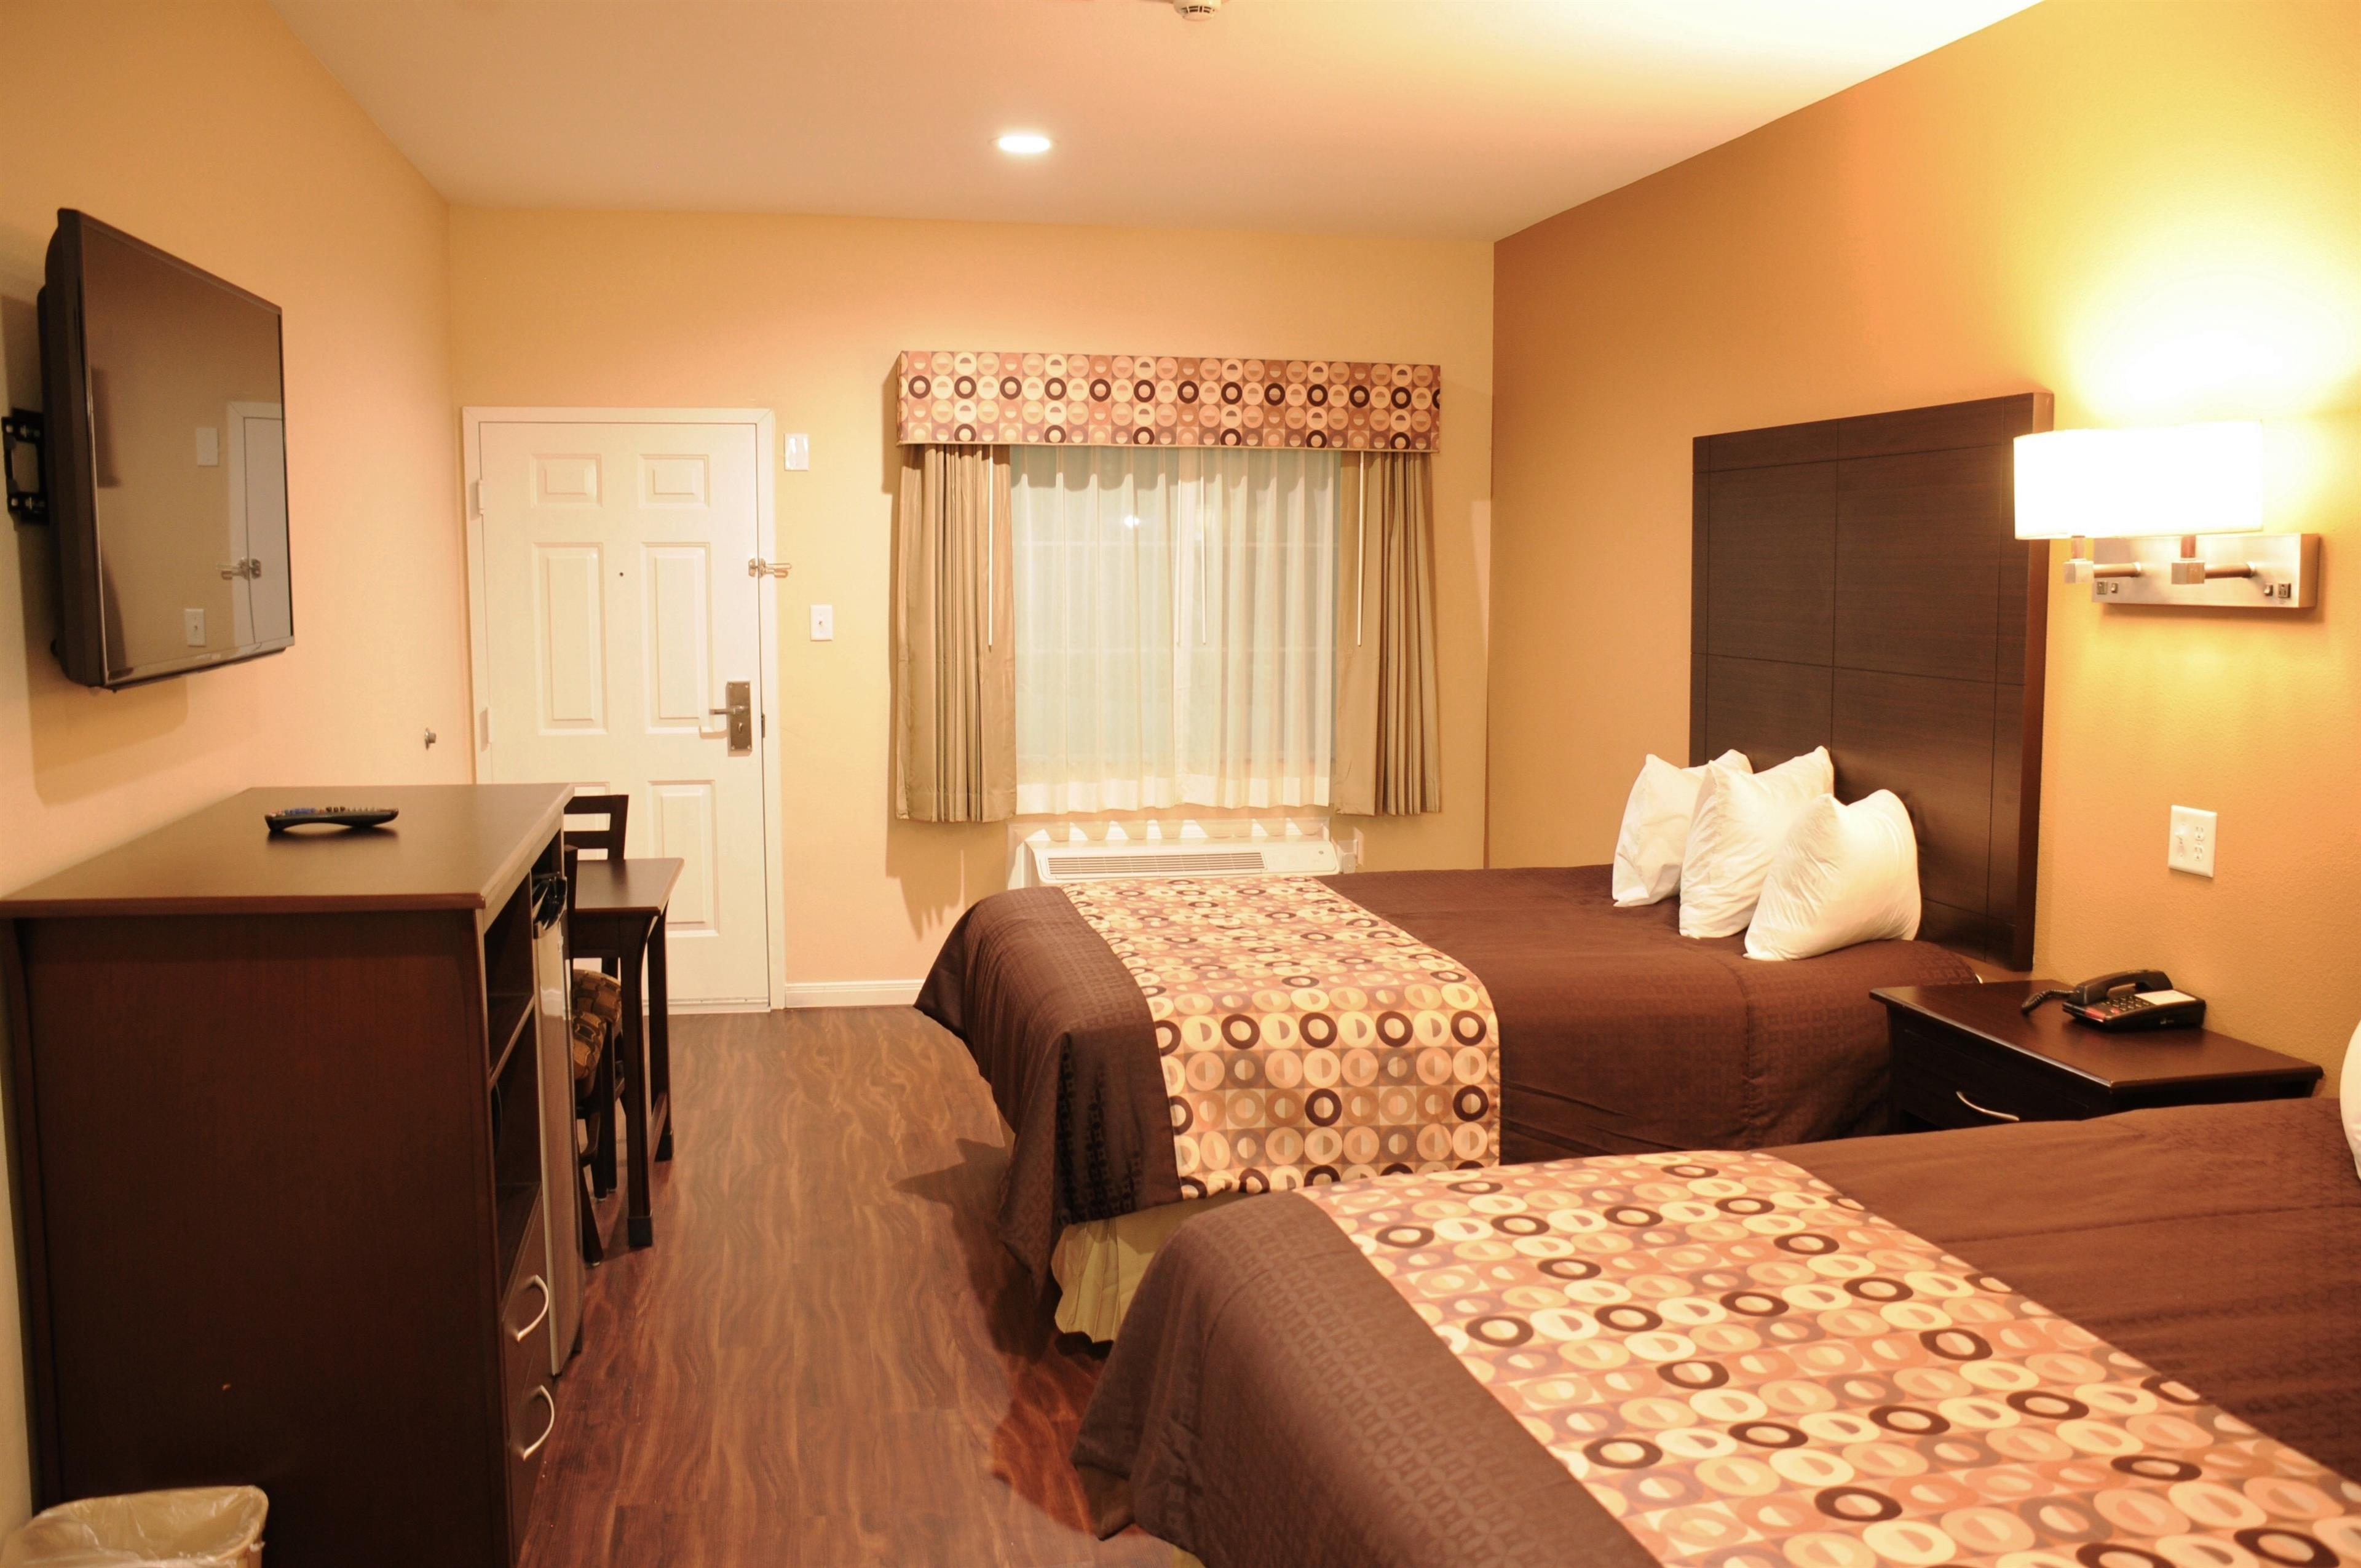 Americas best value inn houston fm 529 coupons near me for Americas best coupons